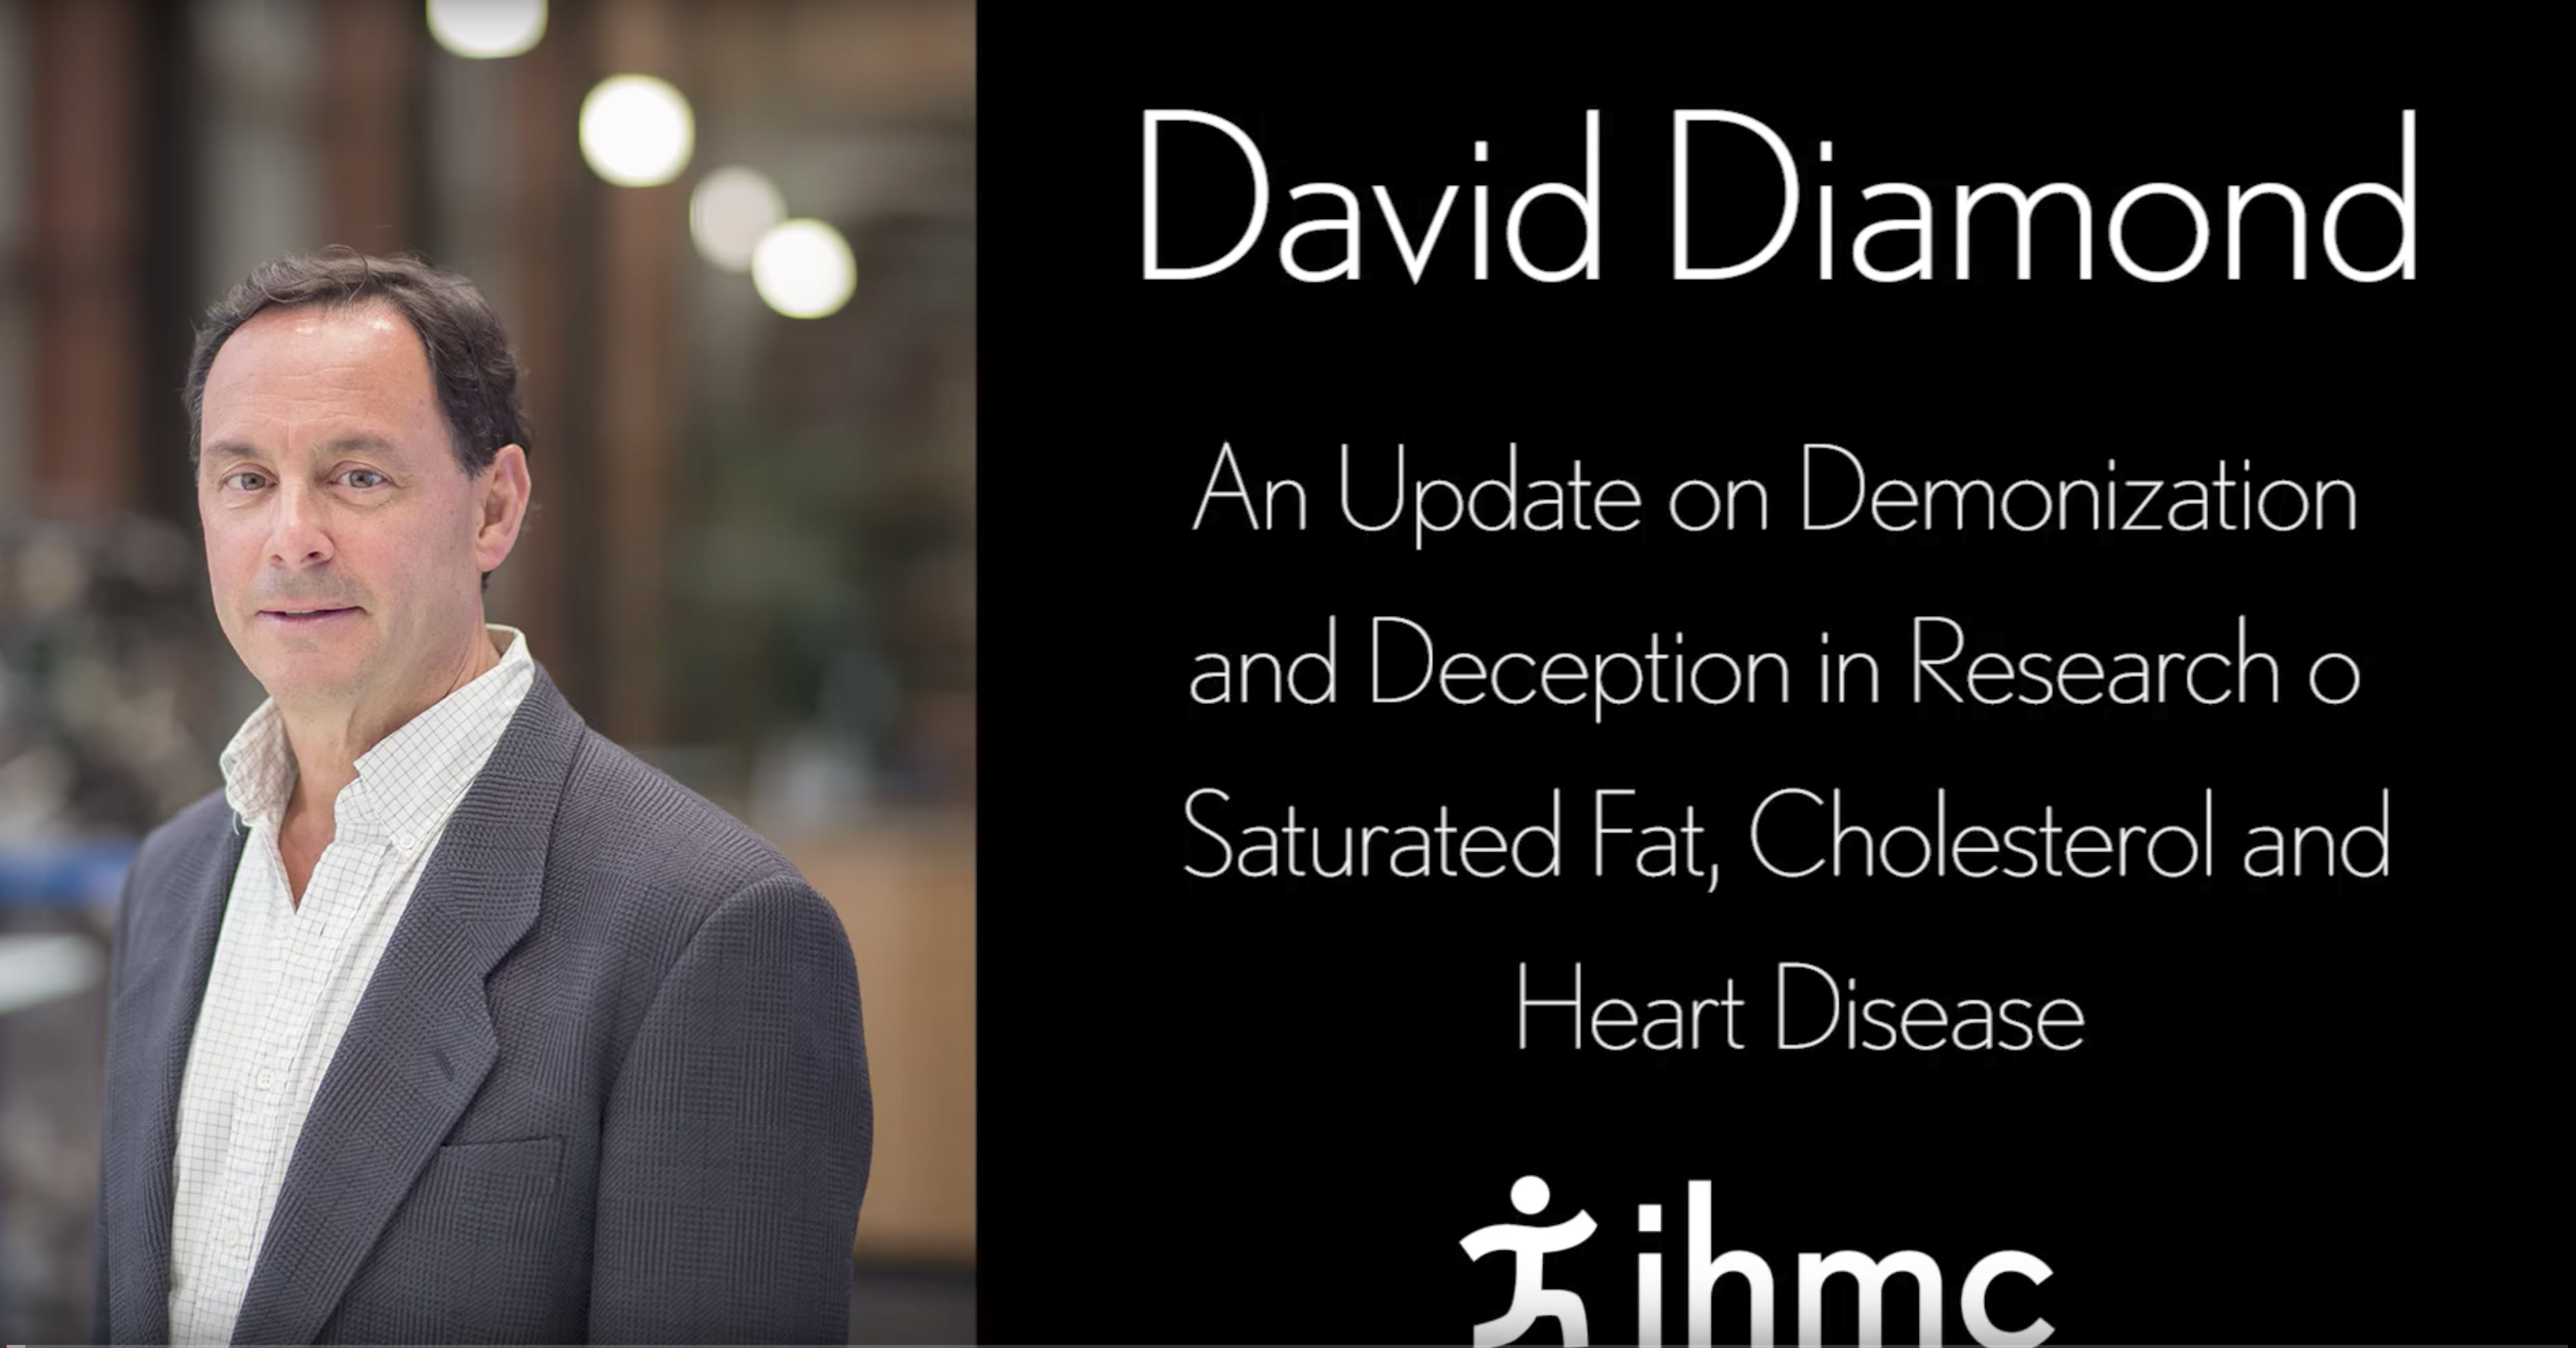 The demonization and deception in research on saturated fat, cholesterol and heart disease